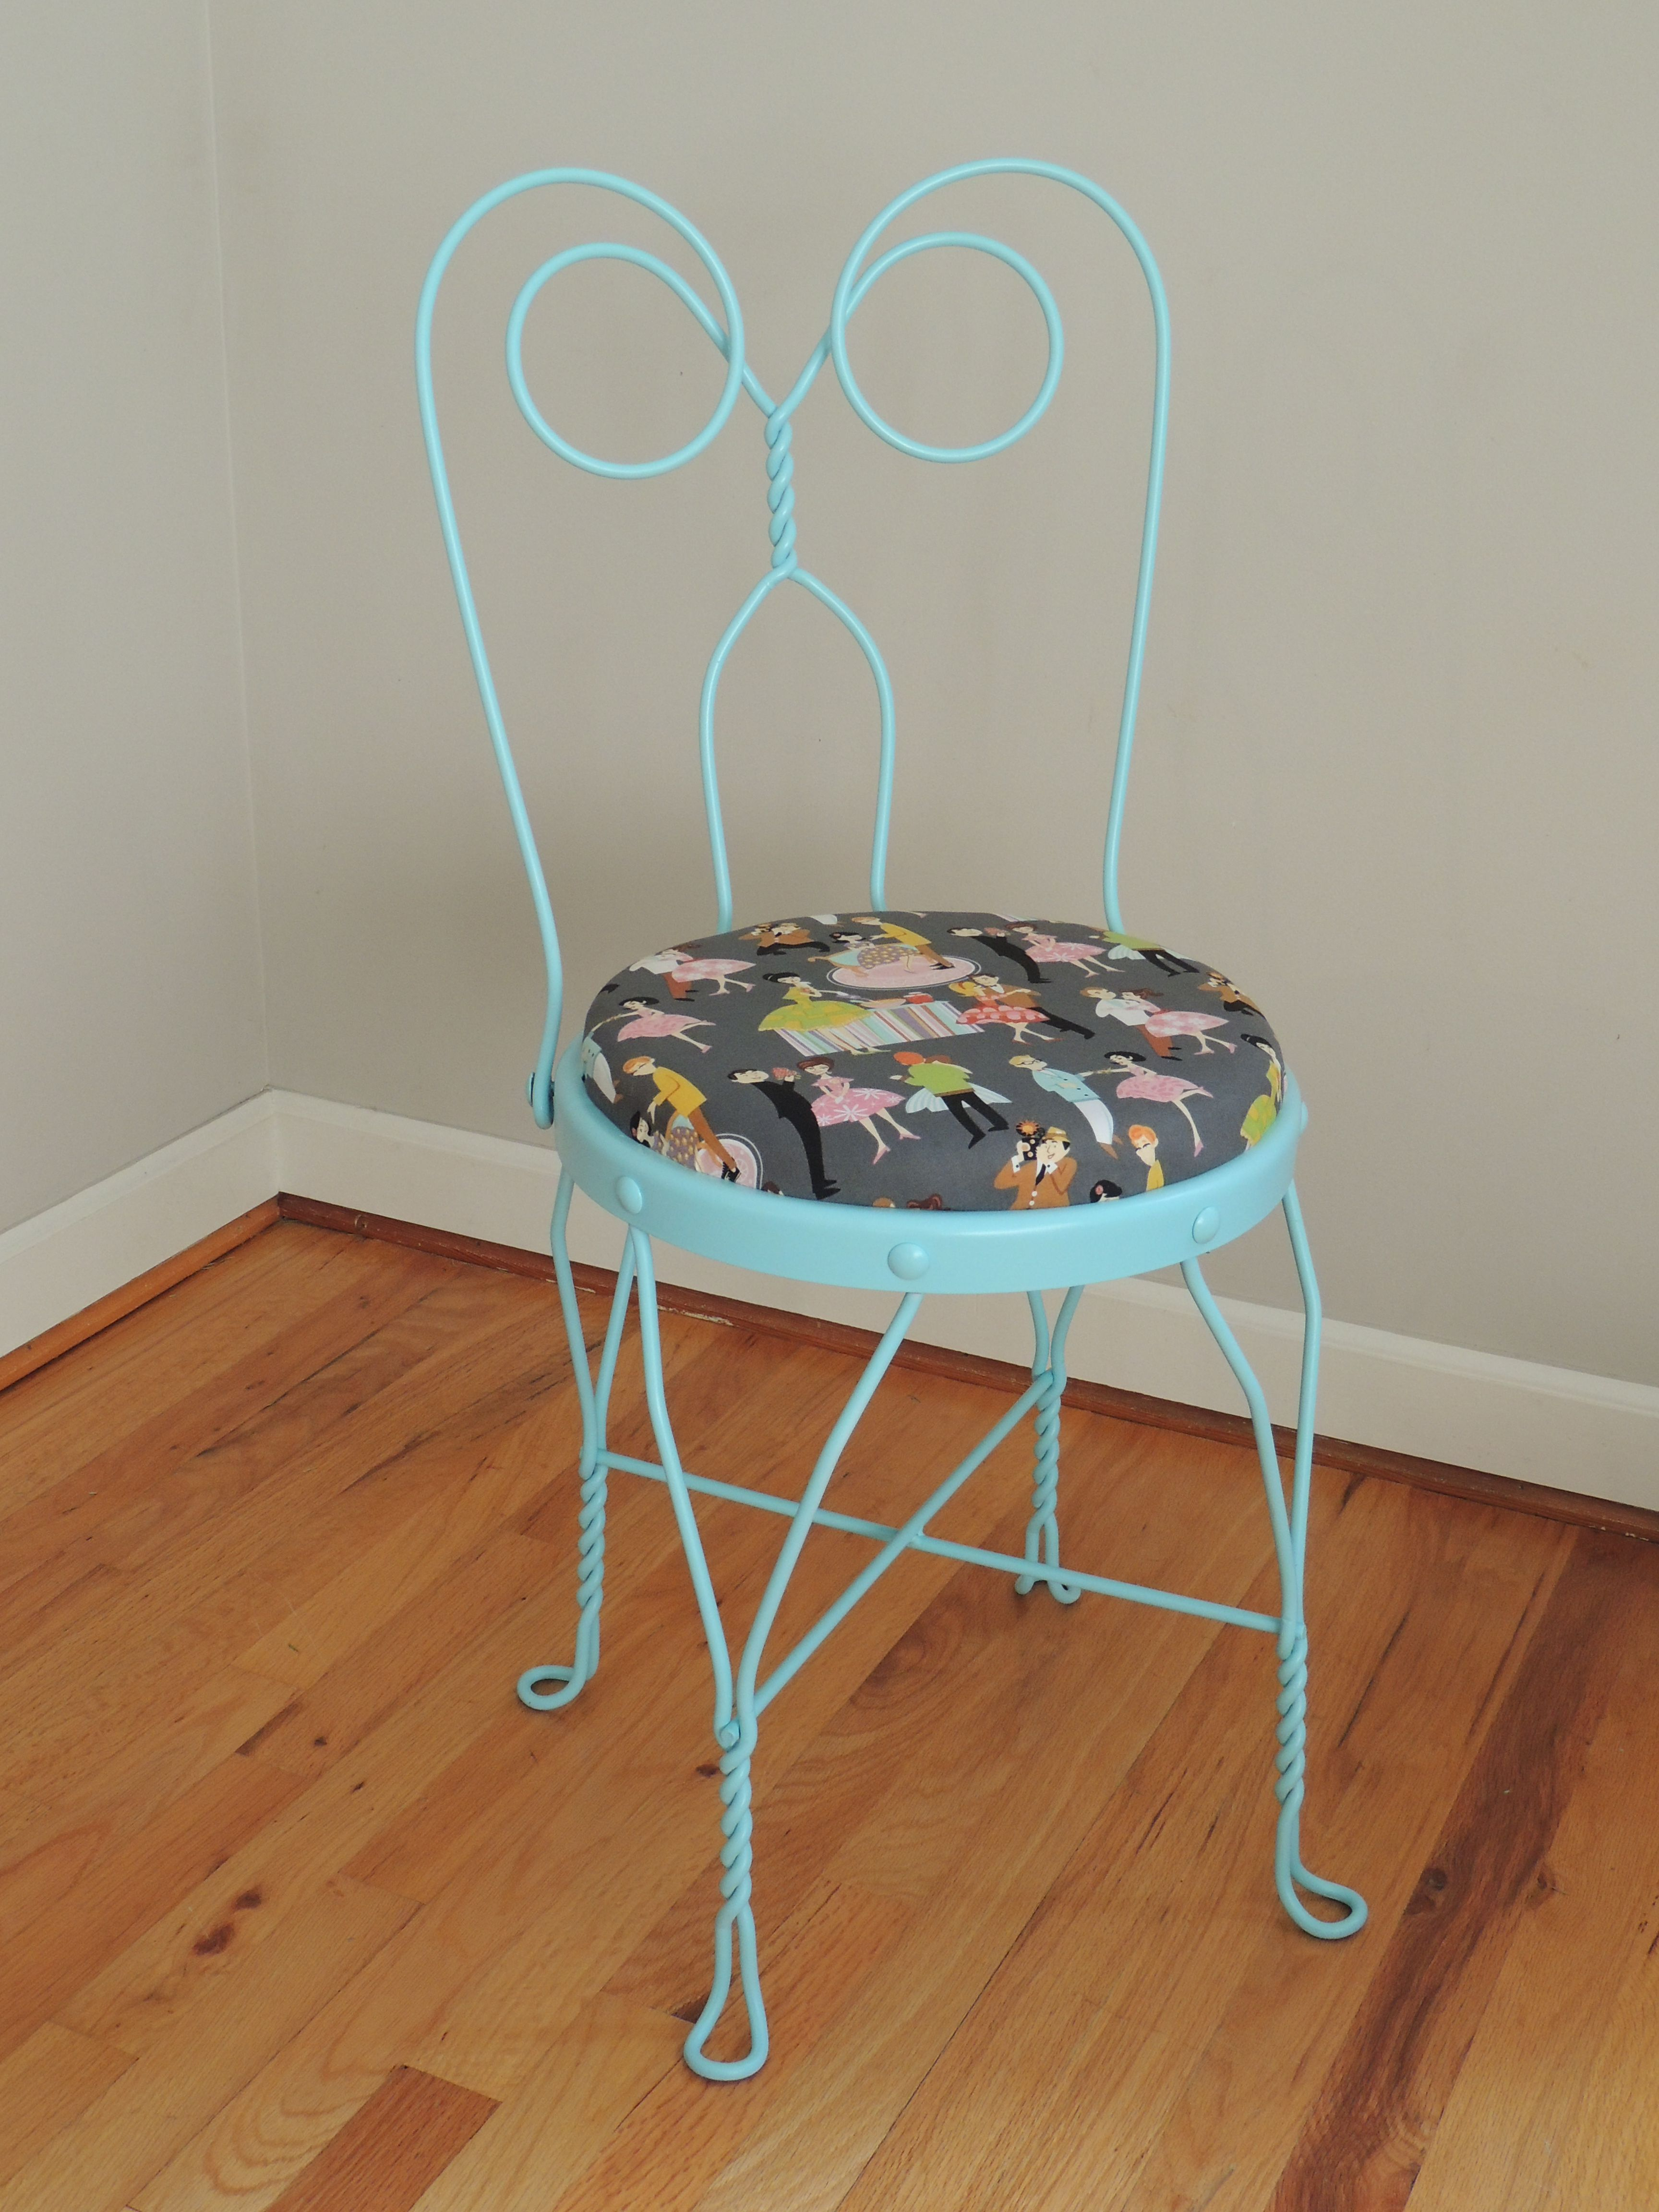 Turquoise Vintage Ice Cream Parlor Chair With Fifties Party Scene Fabric